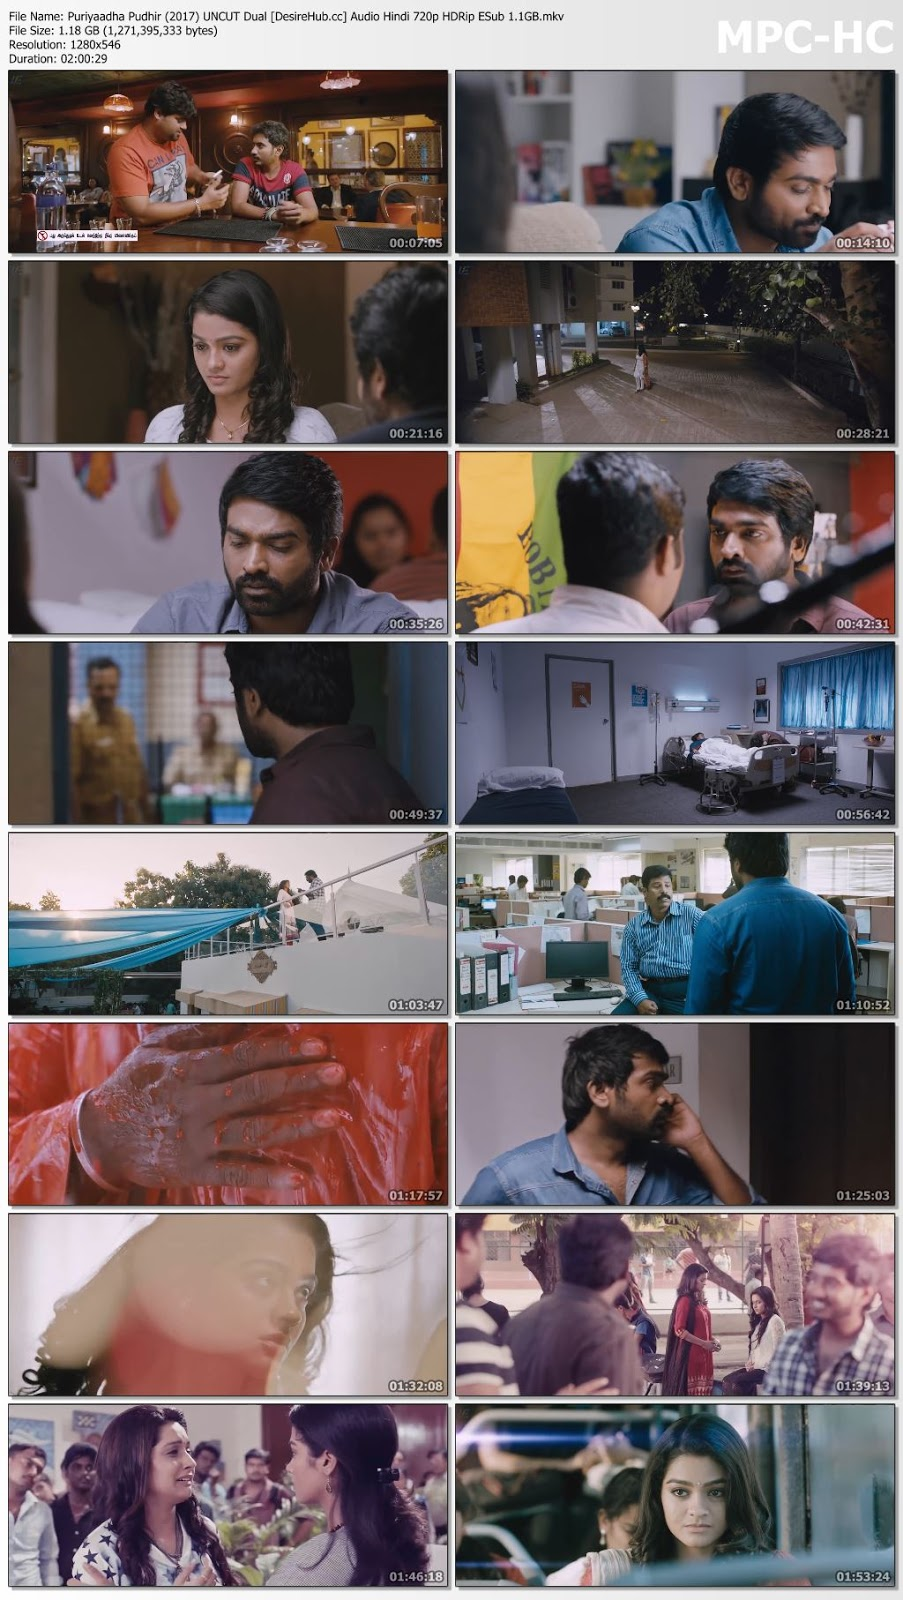 Puriyatha Puthir 2017 UNCUT Dual Audio Hindi 720p ESub 1.1GB Desirehub